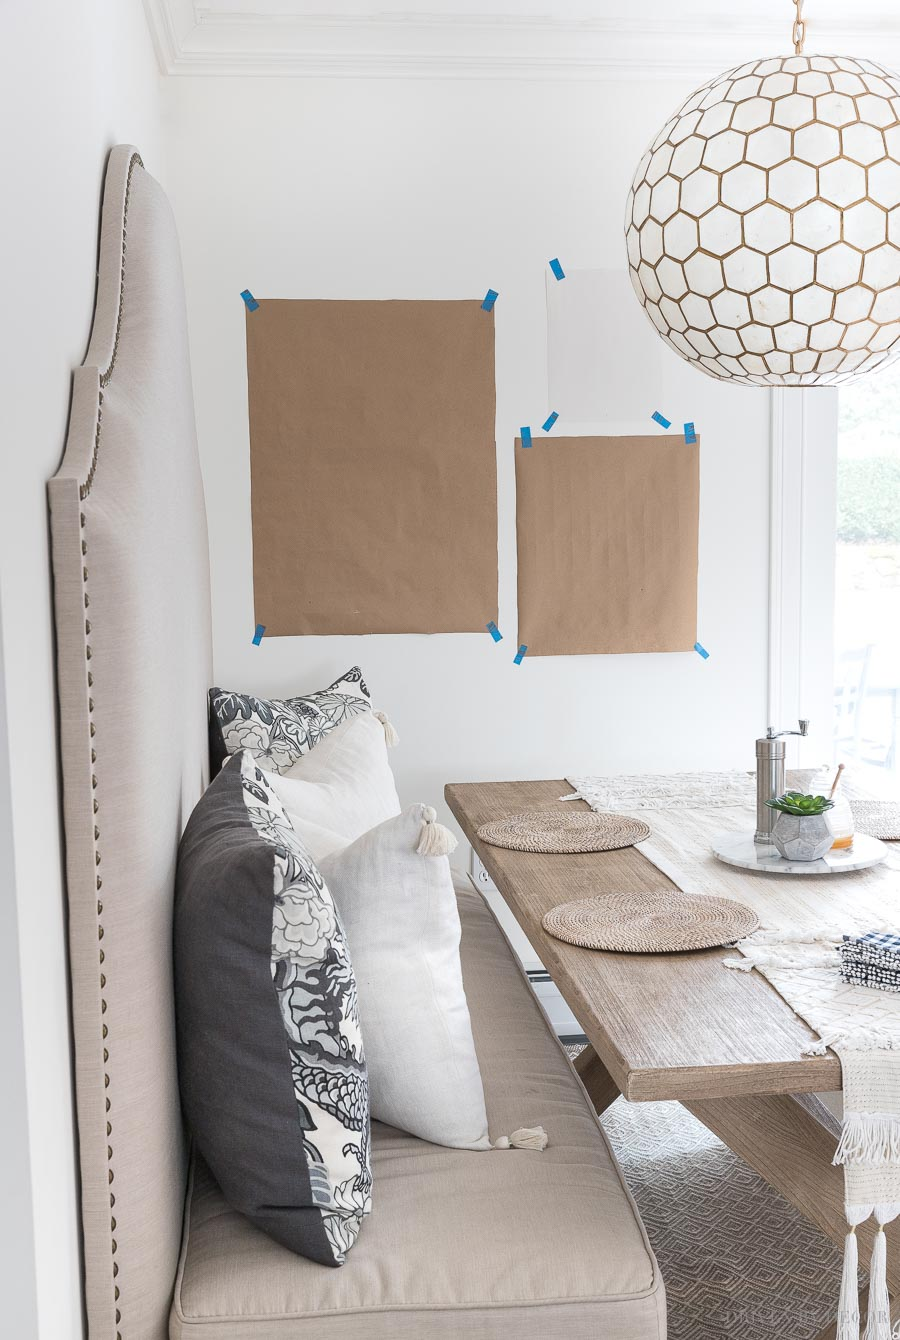 Tips on how to hang pictures using paper templates!